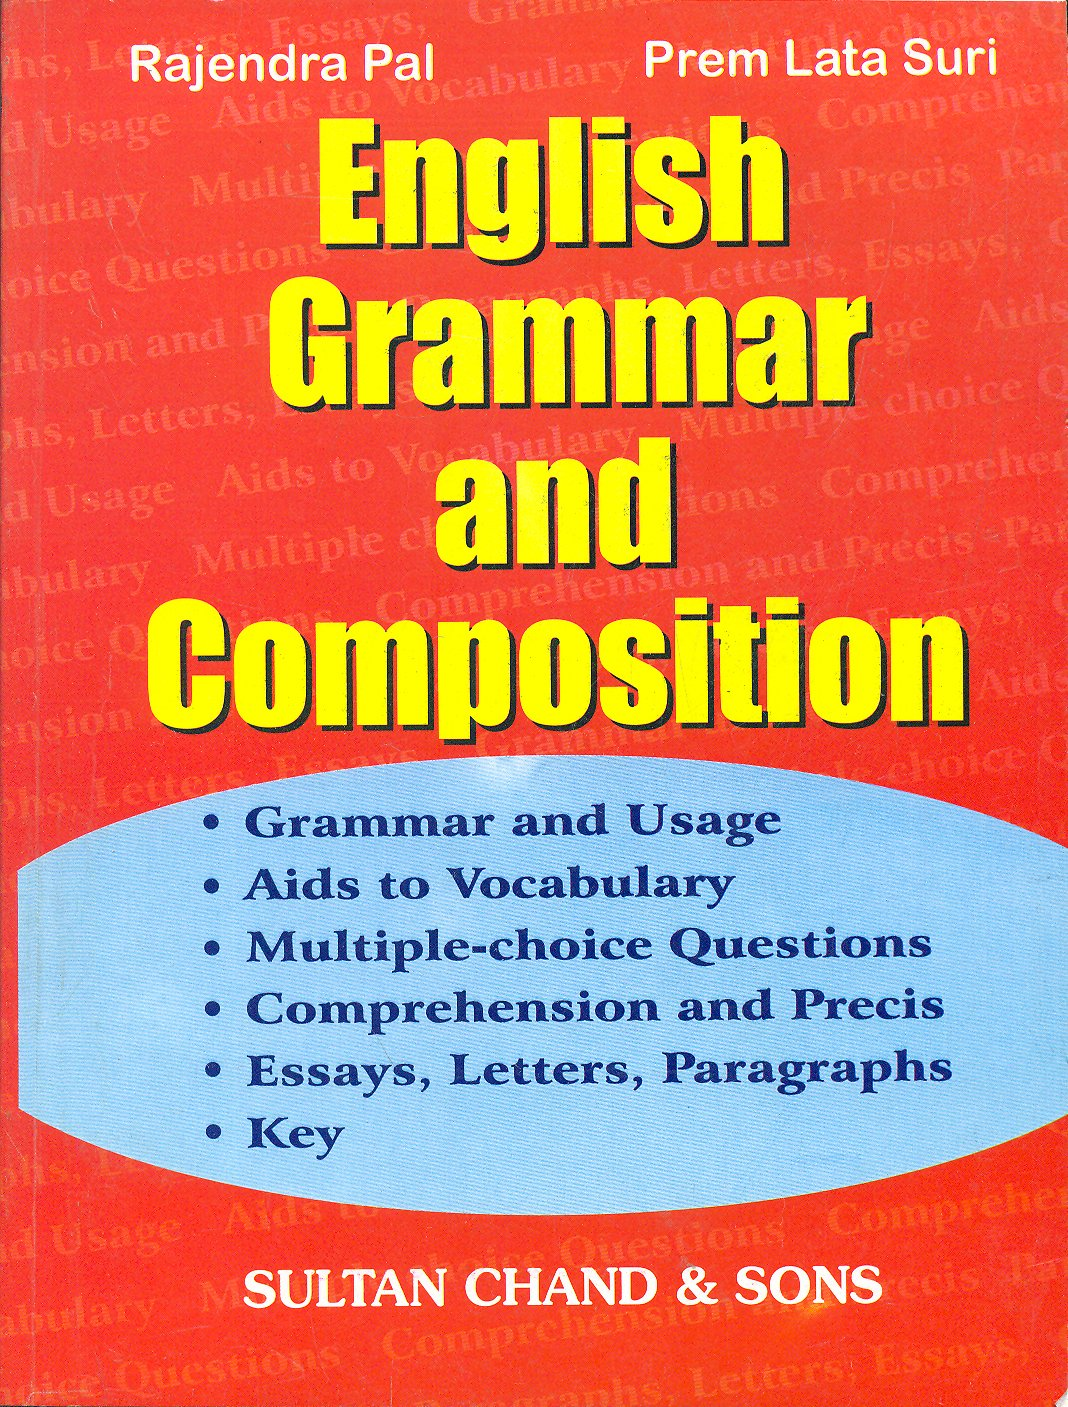 Buy English Grammar and Composition Book Online at Low Prices in ...